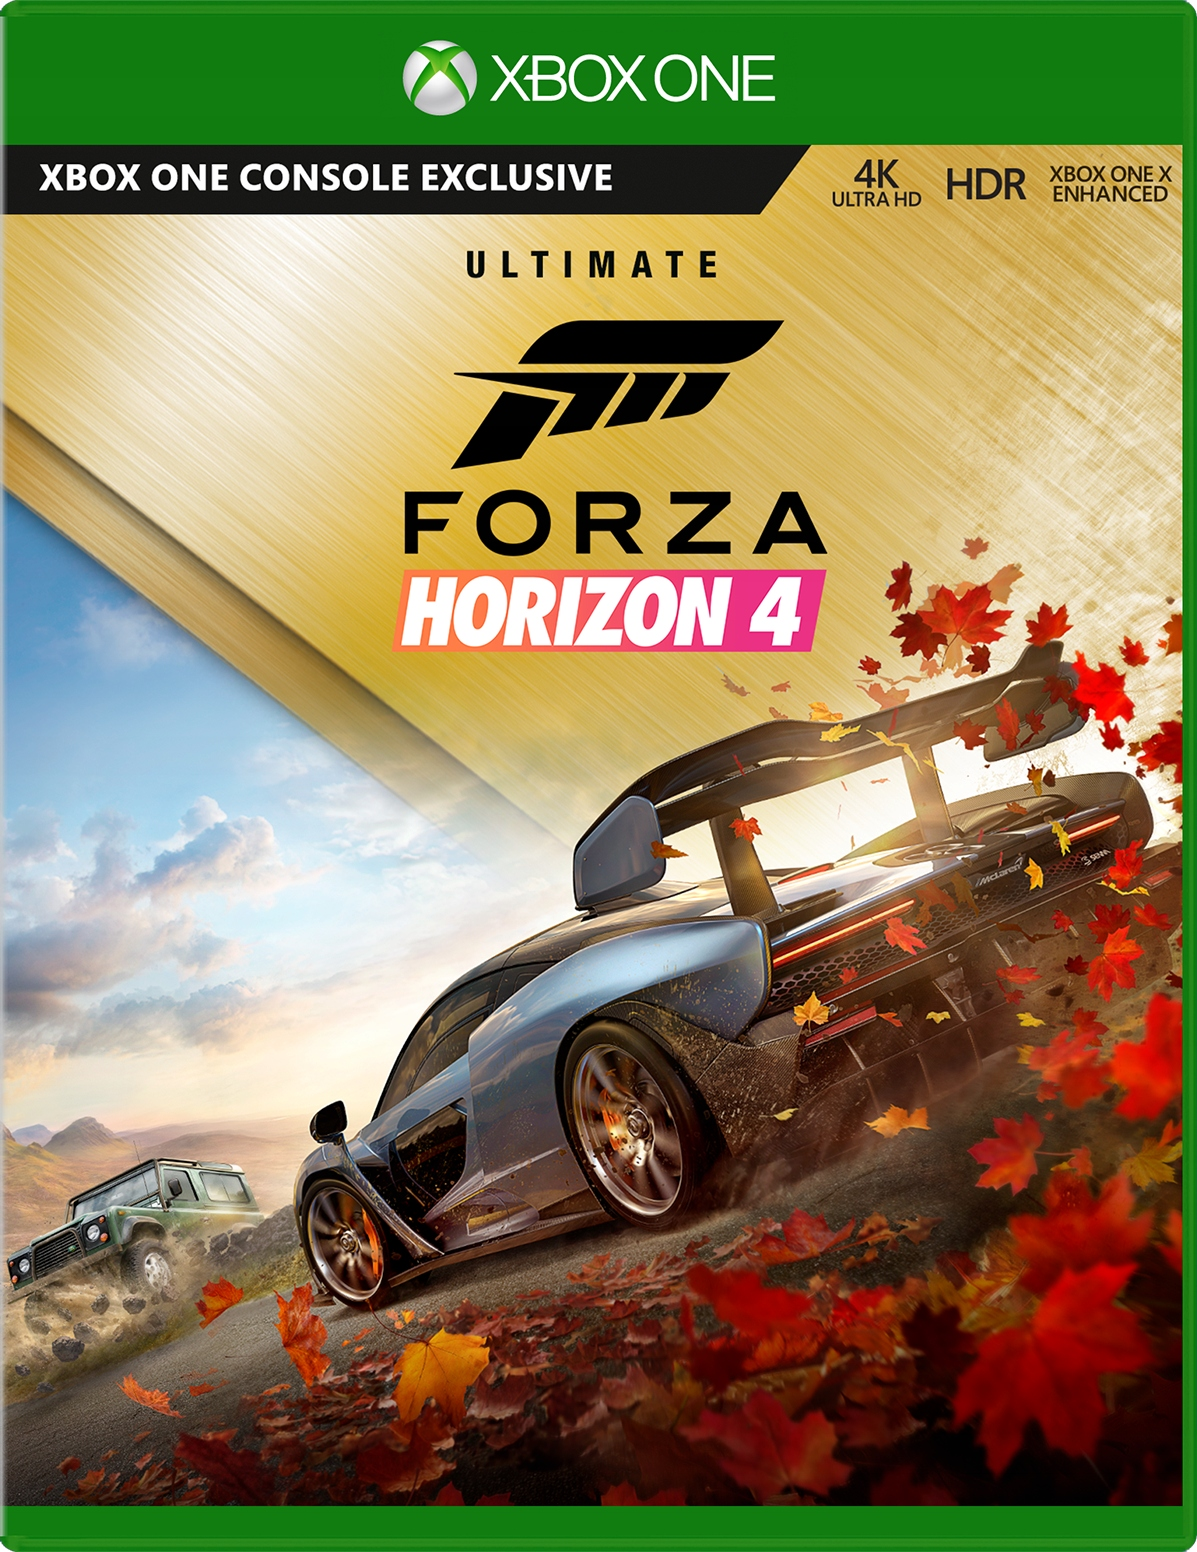 Forza horizon 4 Ultimate Edition Xbox One